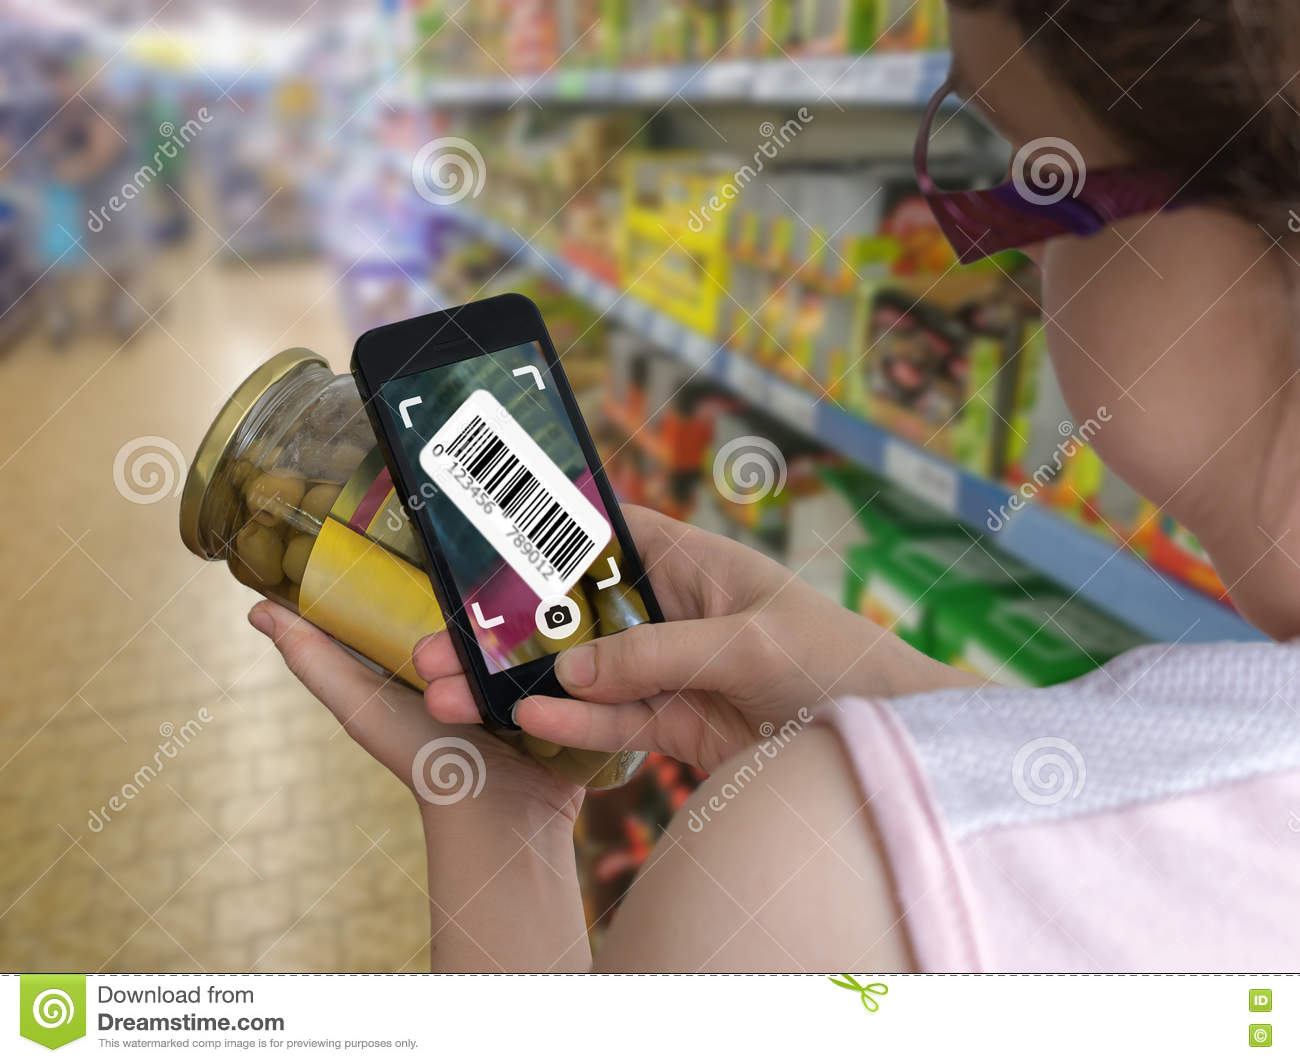 Woman is shopping in supermarket and scanning barcode with smartphone in grocery store.